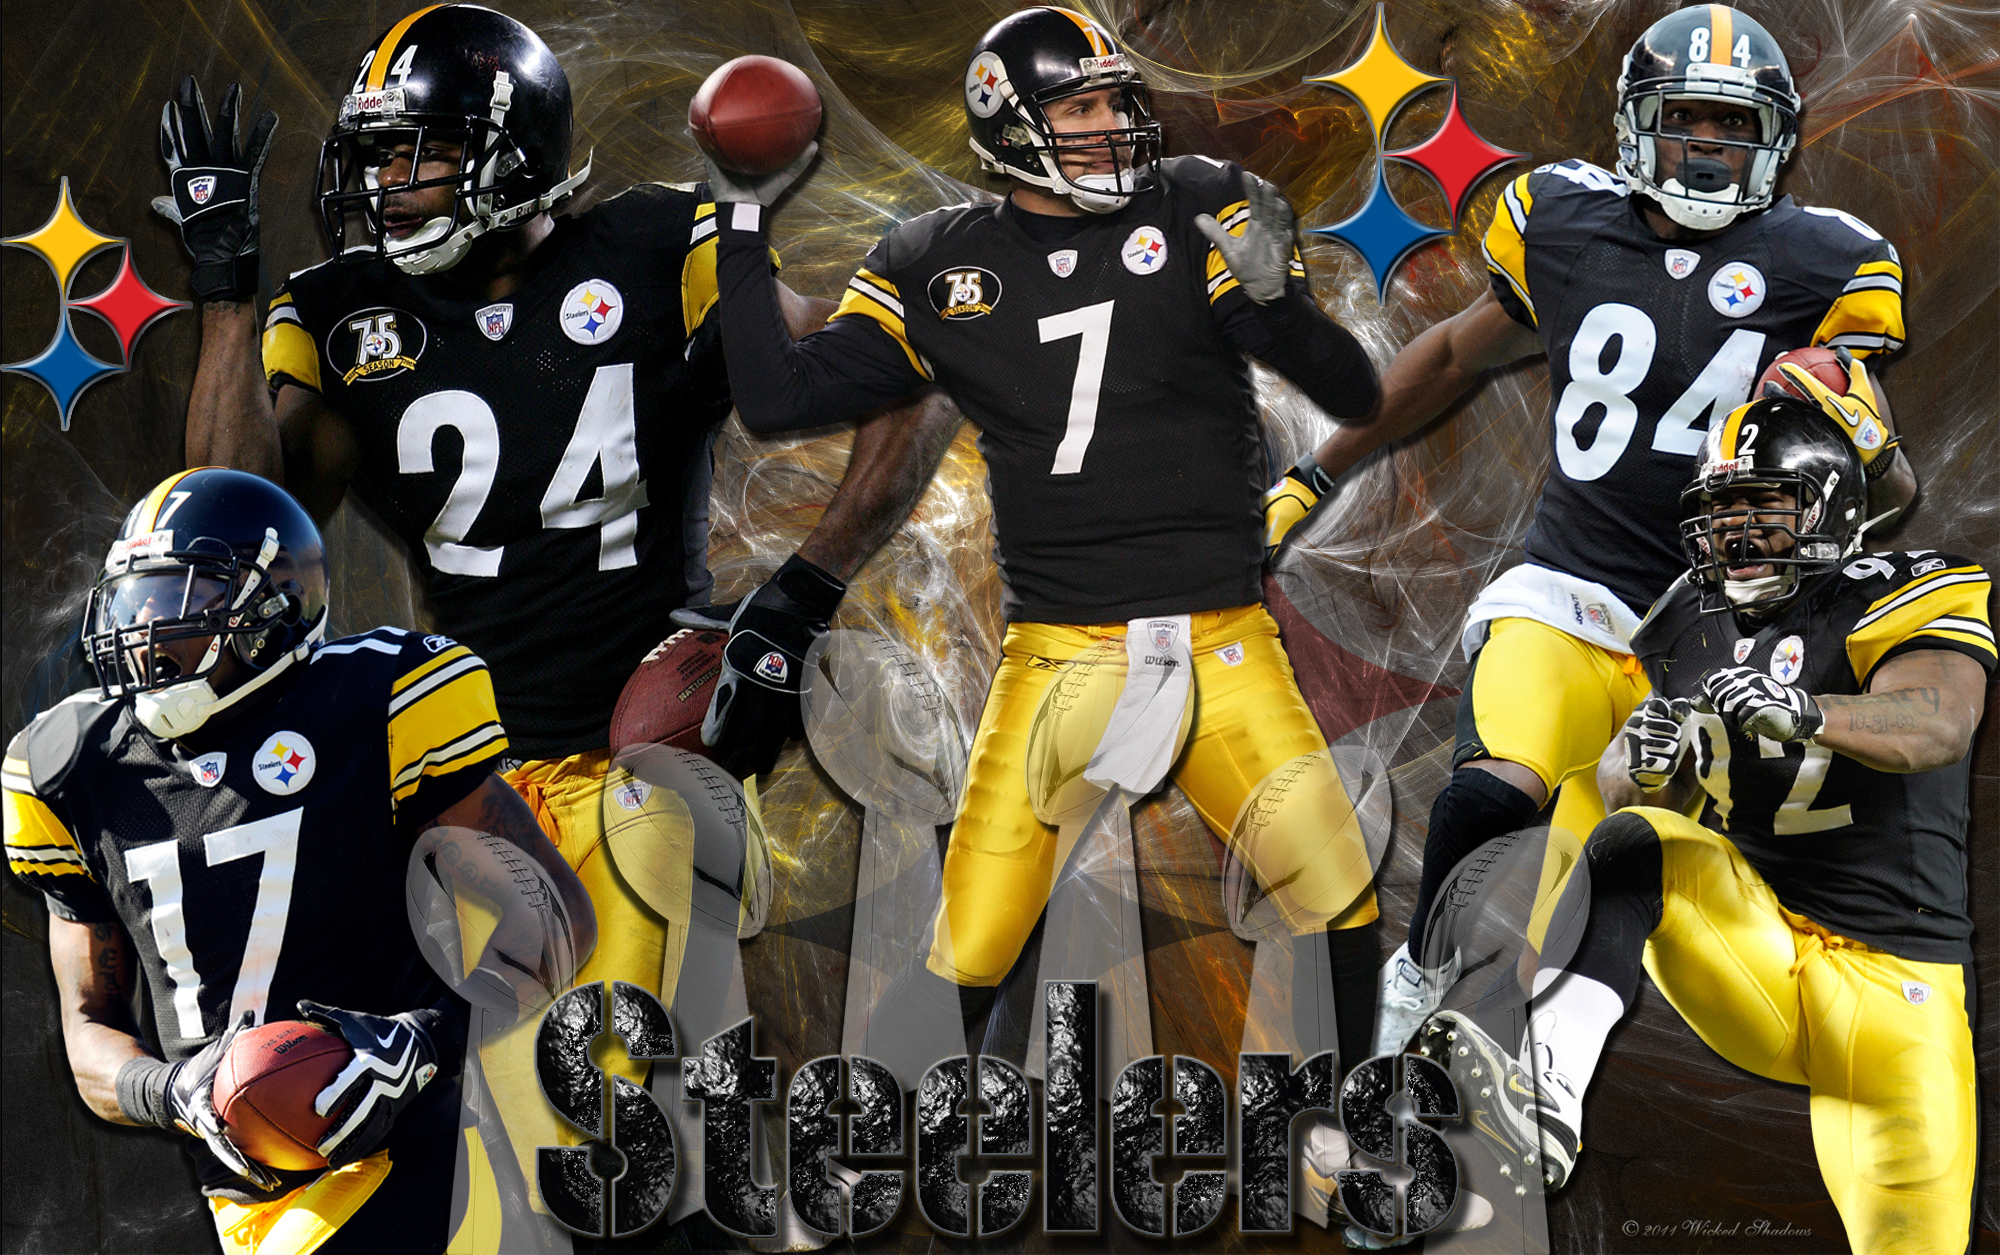 Steelers Wallpaper   FREE DOWNLOAD HD WALLPAPERS 2000x1255